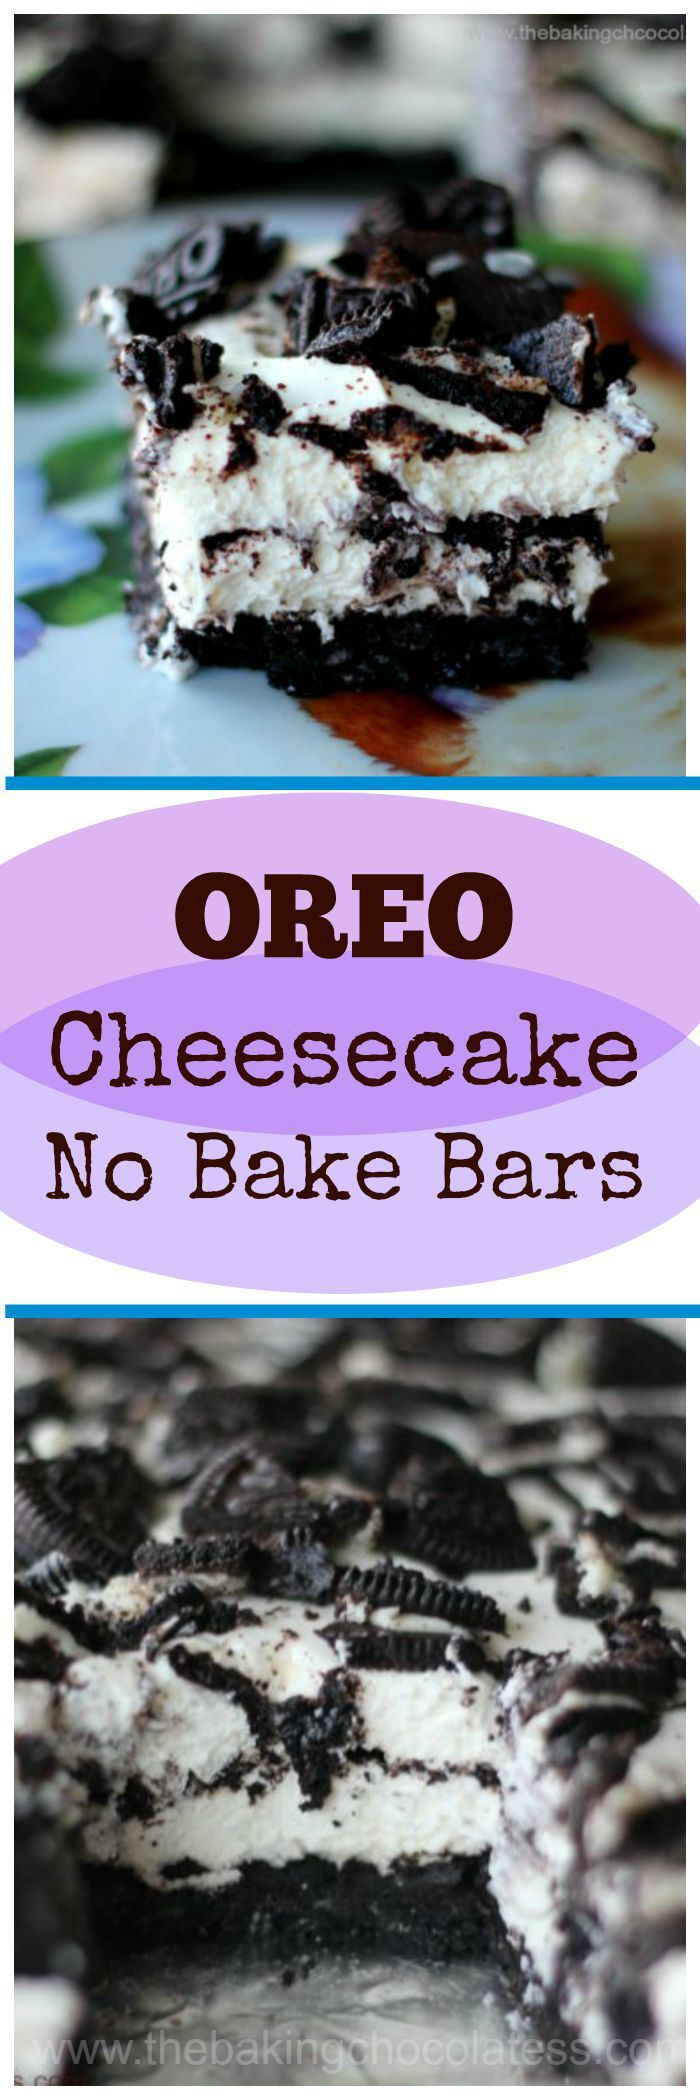 Oreo Cheesecake No Bake Bars